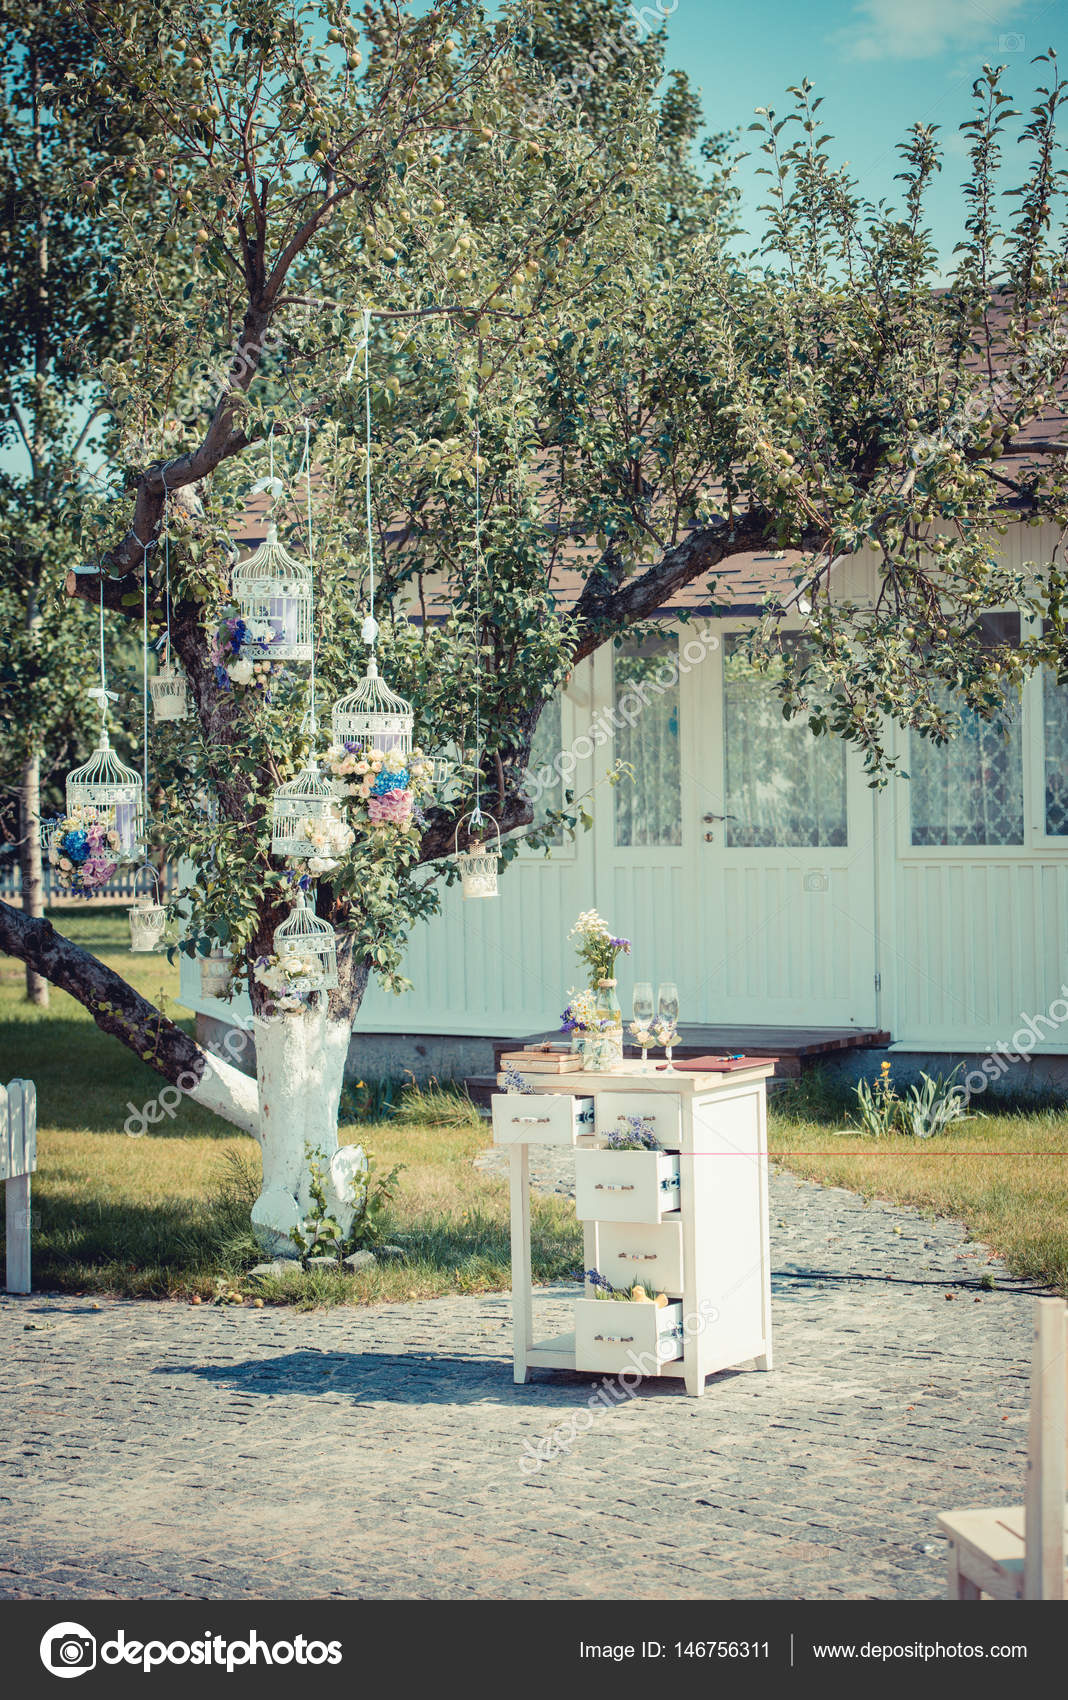 Beautiful Vintage Wedding Ceremony Outdoors Summertime Old White Wooden House Tree Decorated With Cages Full Of Flowers Rustic Style Table